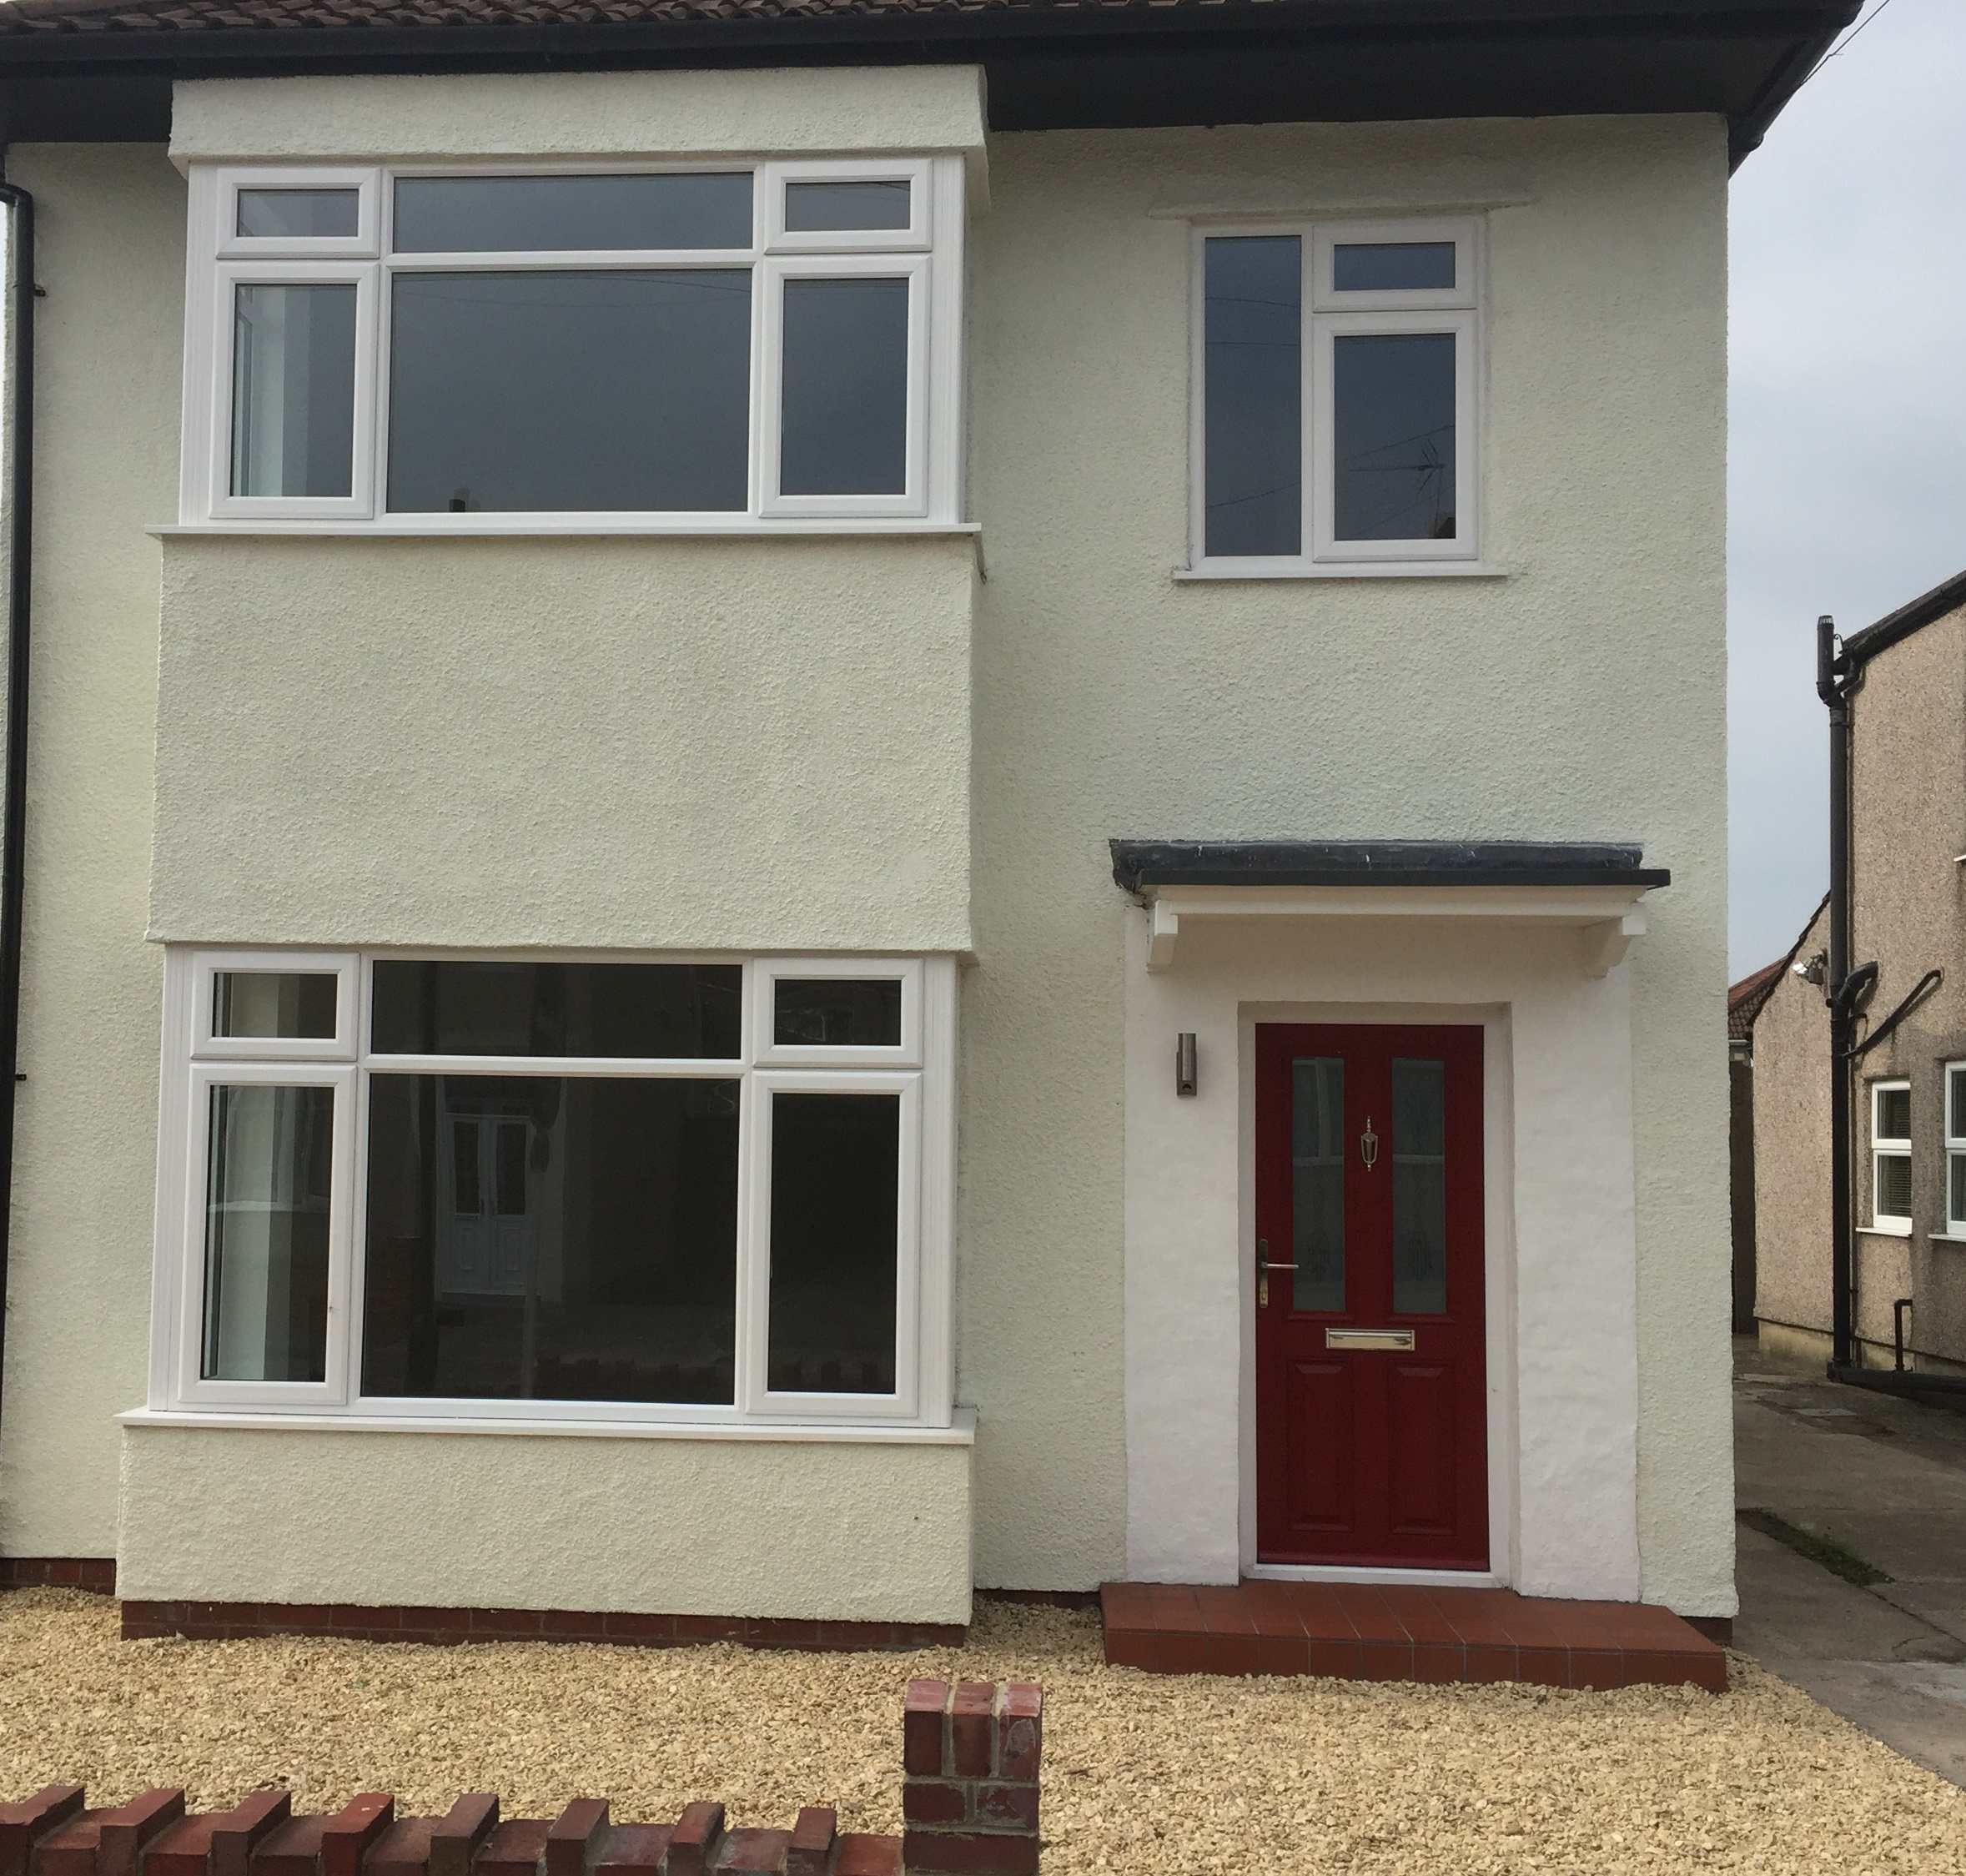 New windows and red composite door